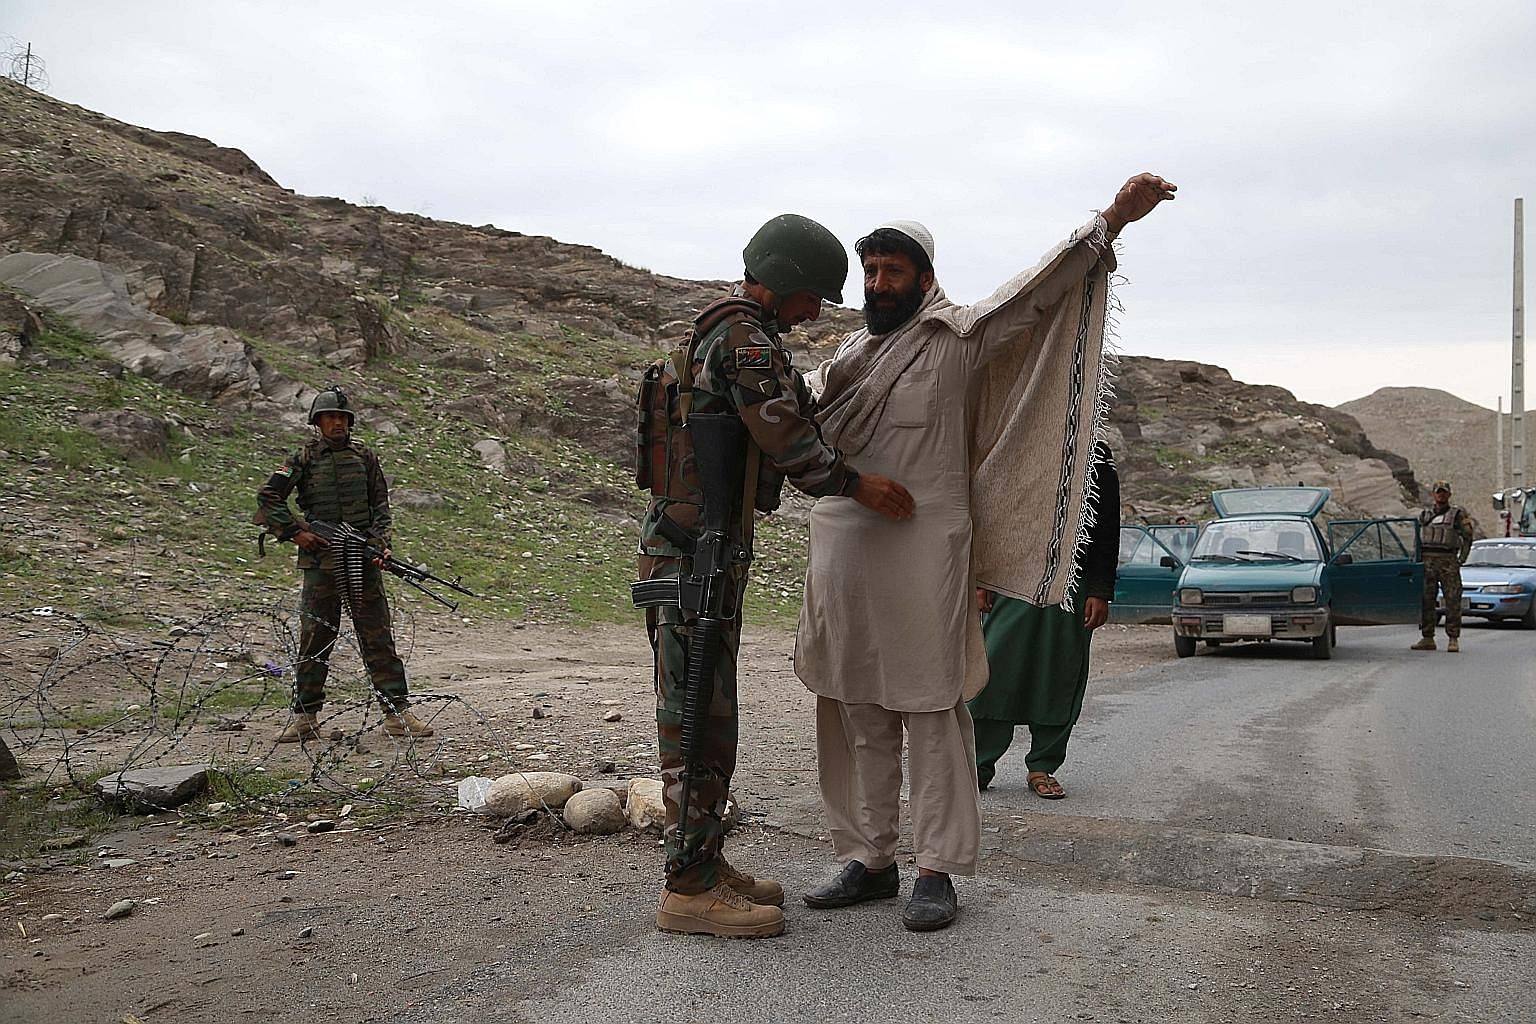 Afghan security officials manning a checkpoint in Nangarhar province, Afghanistan, on Wednesday. The US and Taleban signed a peace agreement on Feb 29, whereby the Americans will begin withdrawing some of their troops.